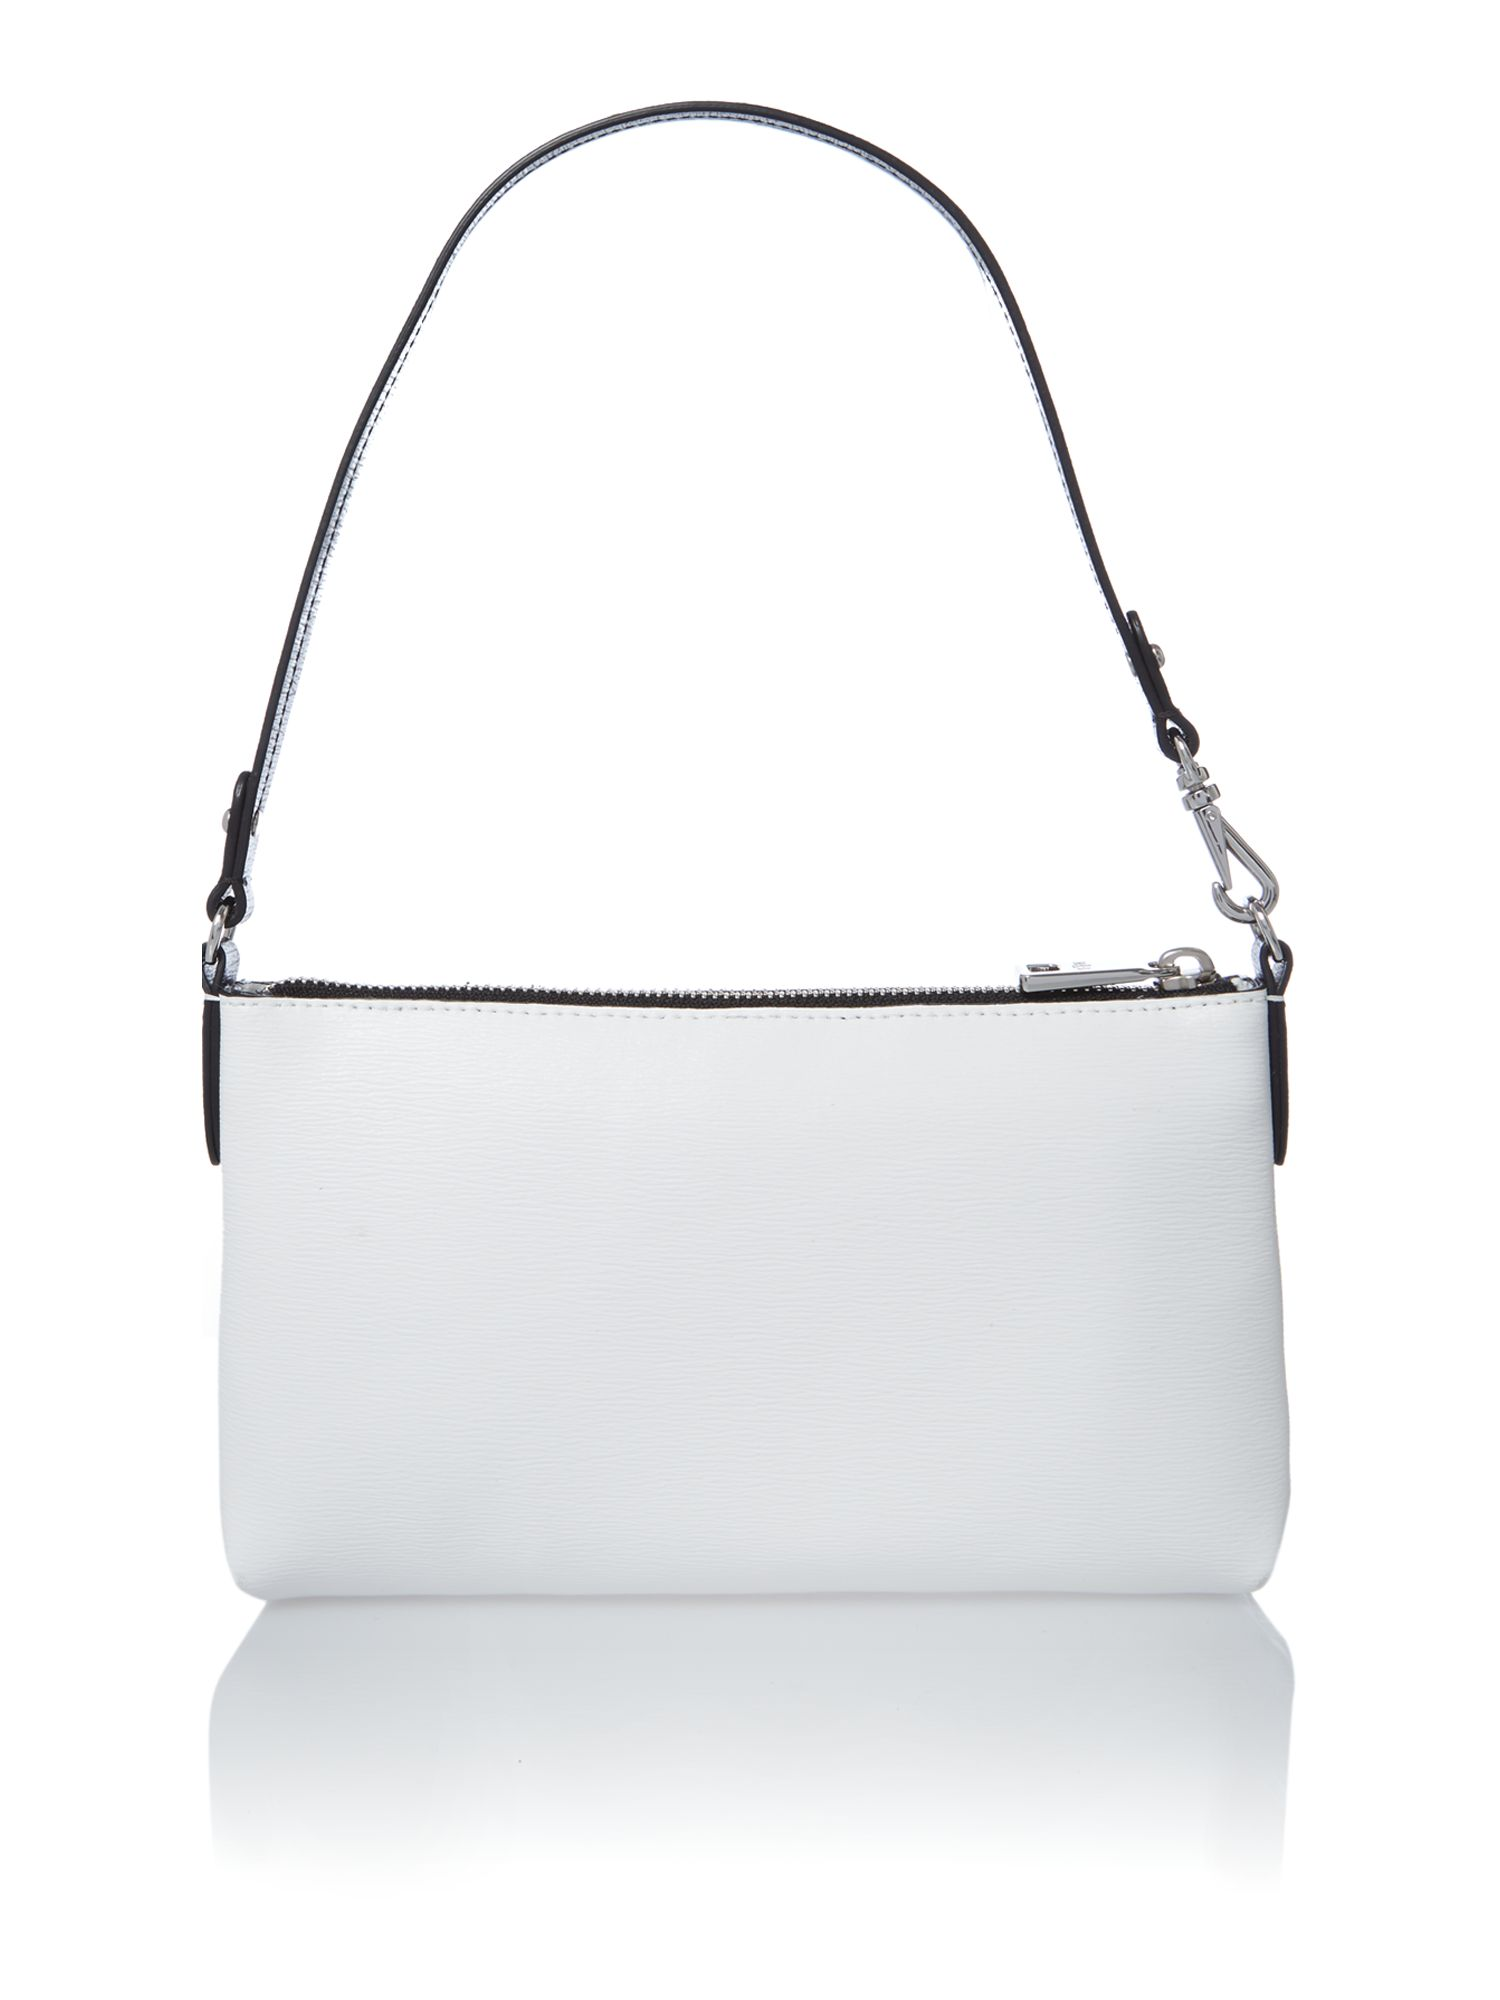 Davenport multi-colured small shoulder bag